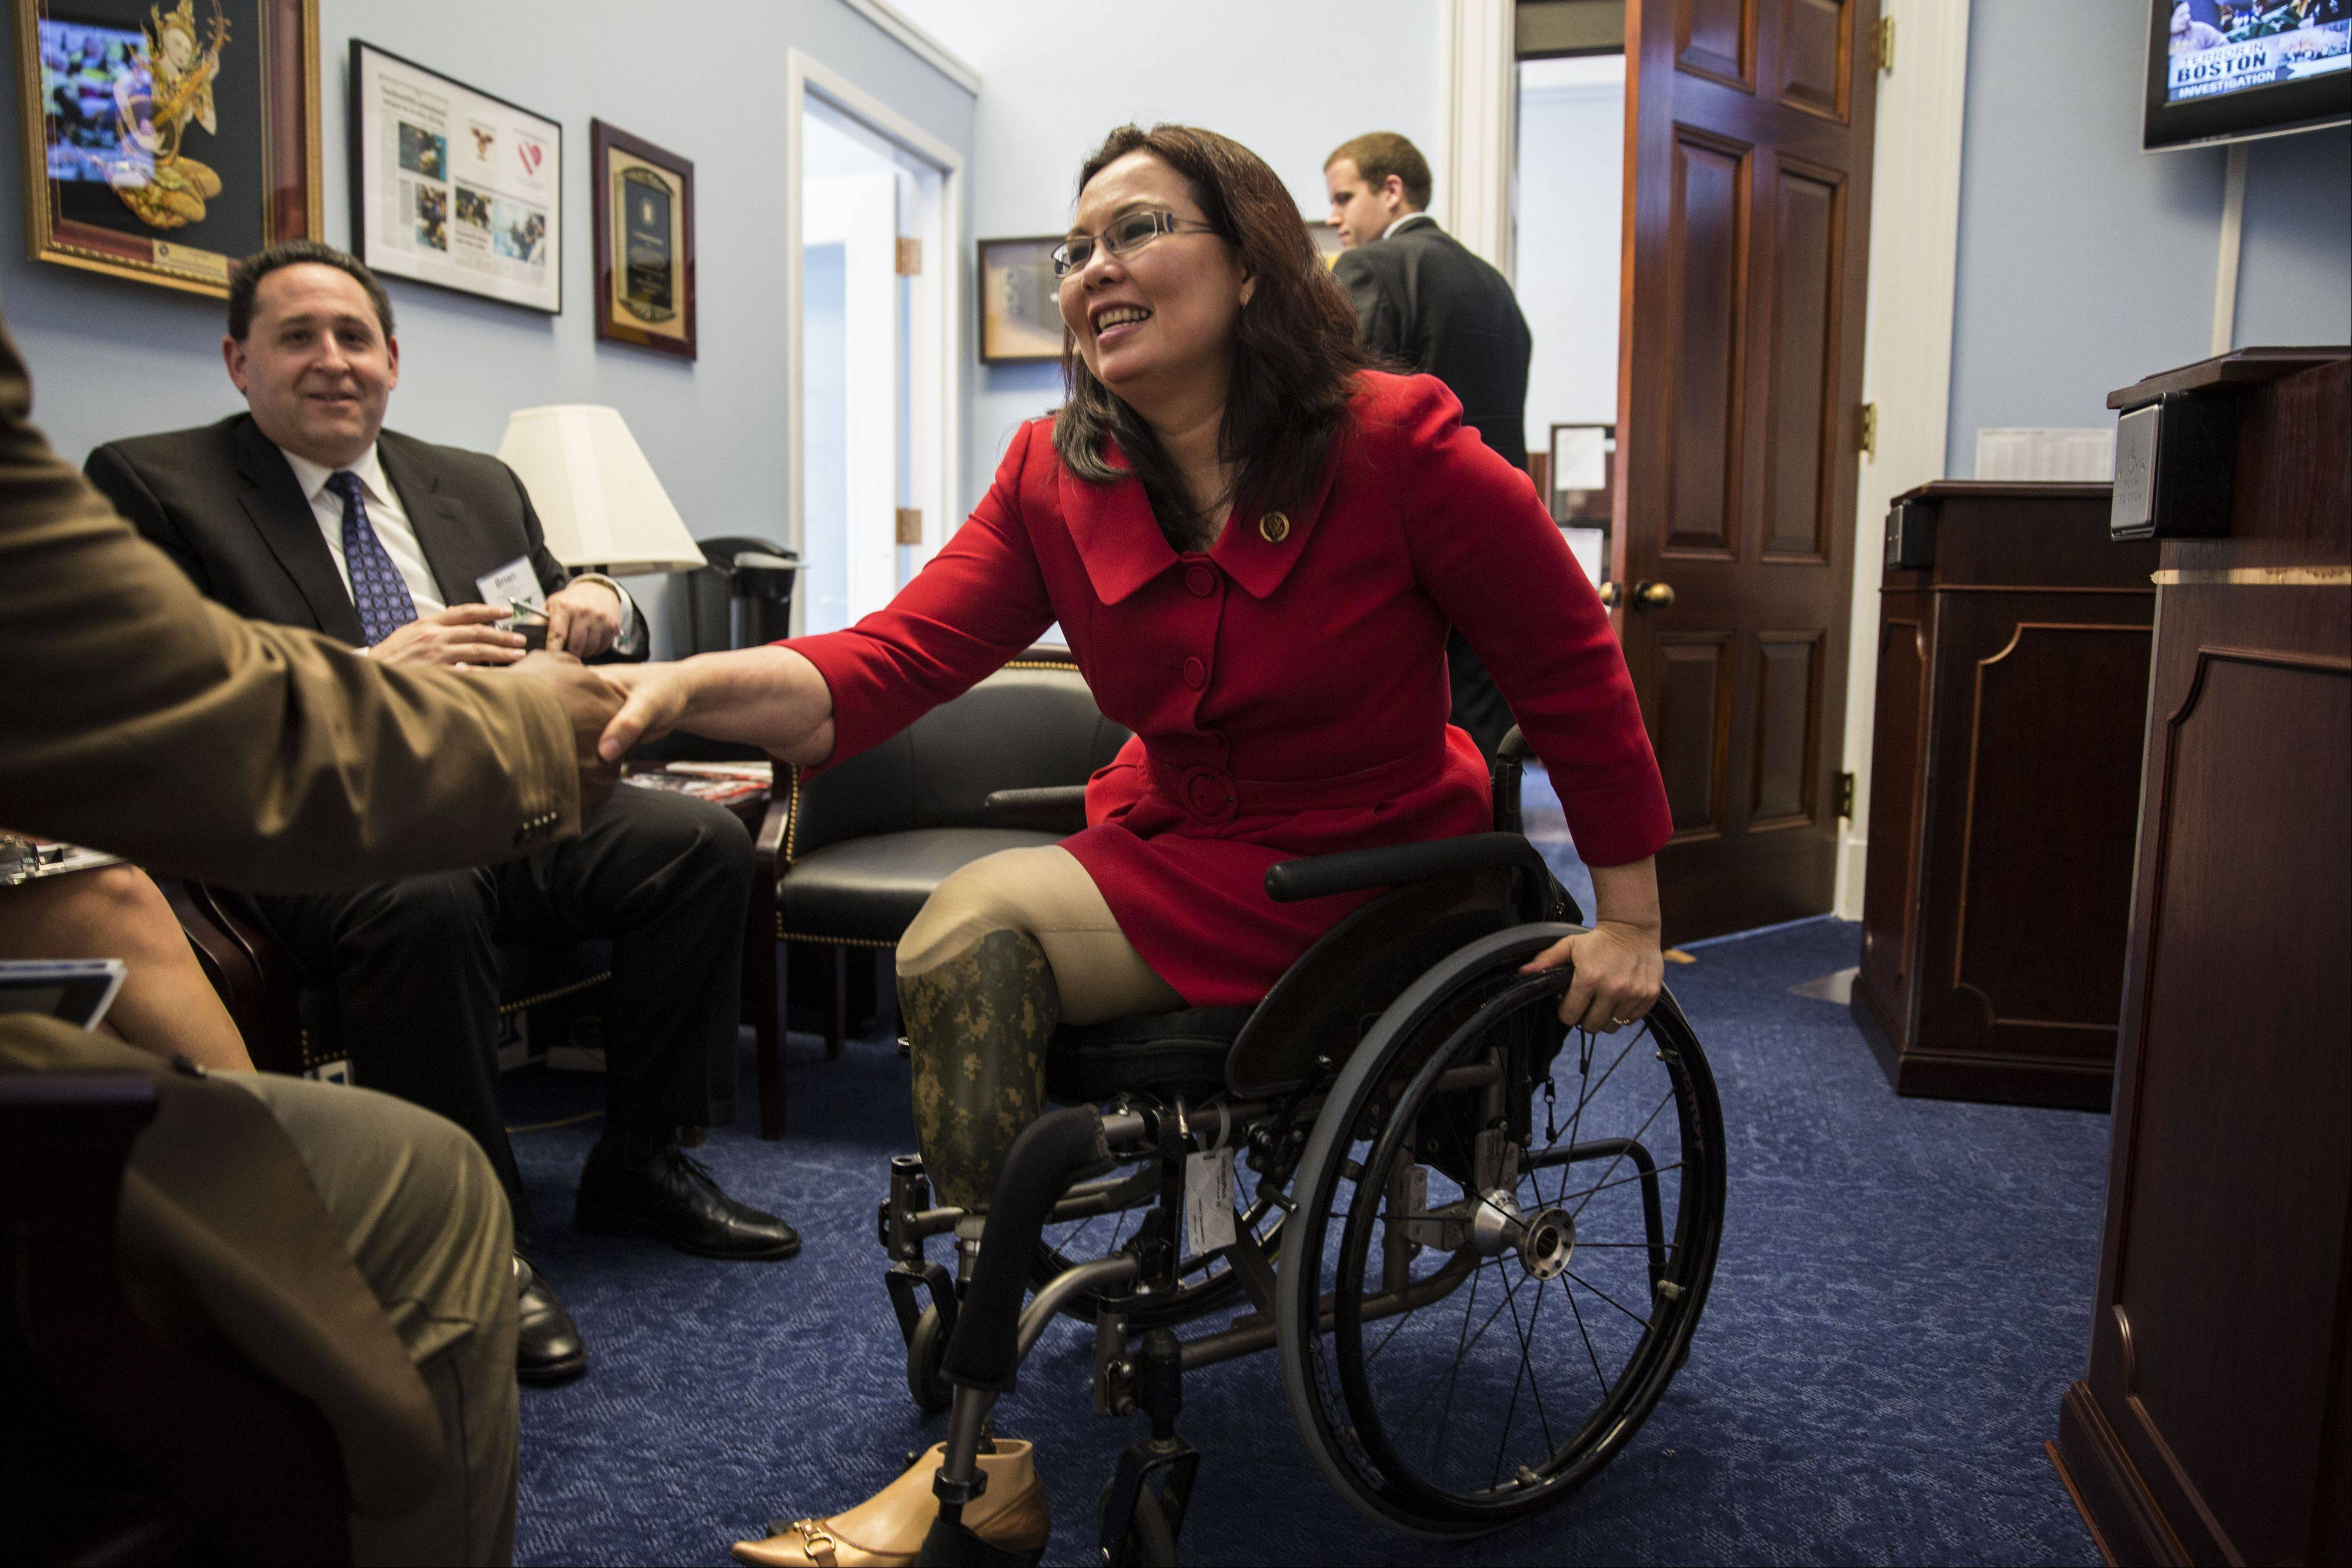 Shared military experience 'a starting place' for Duckworth in Congress